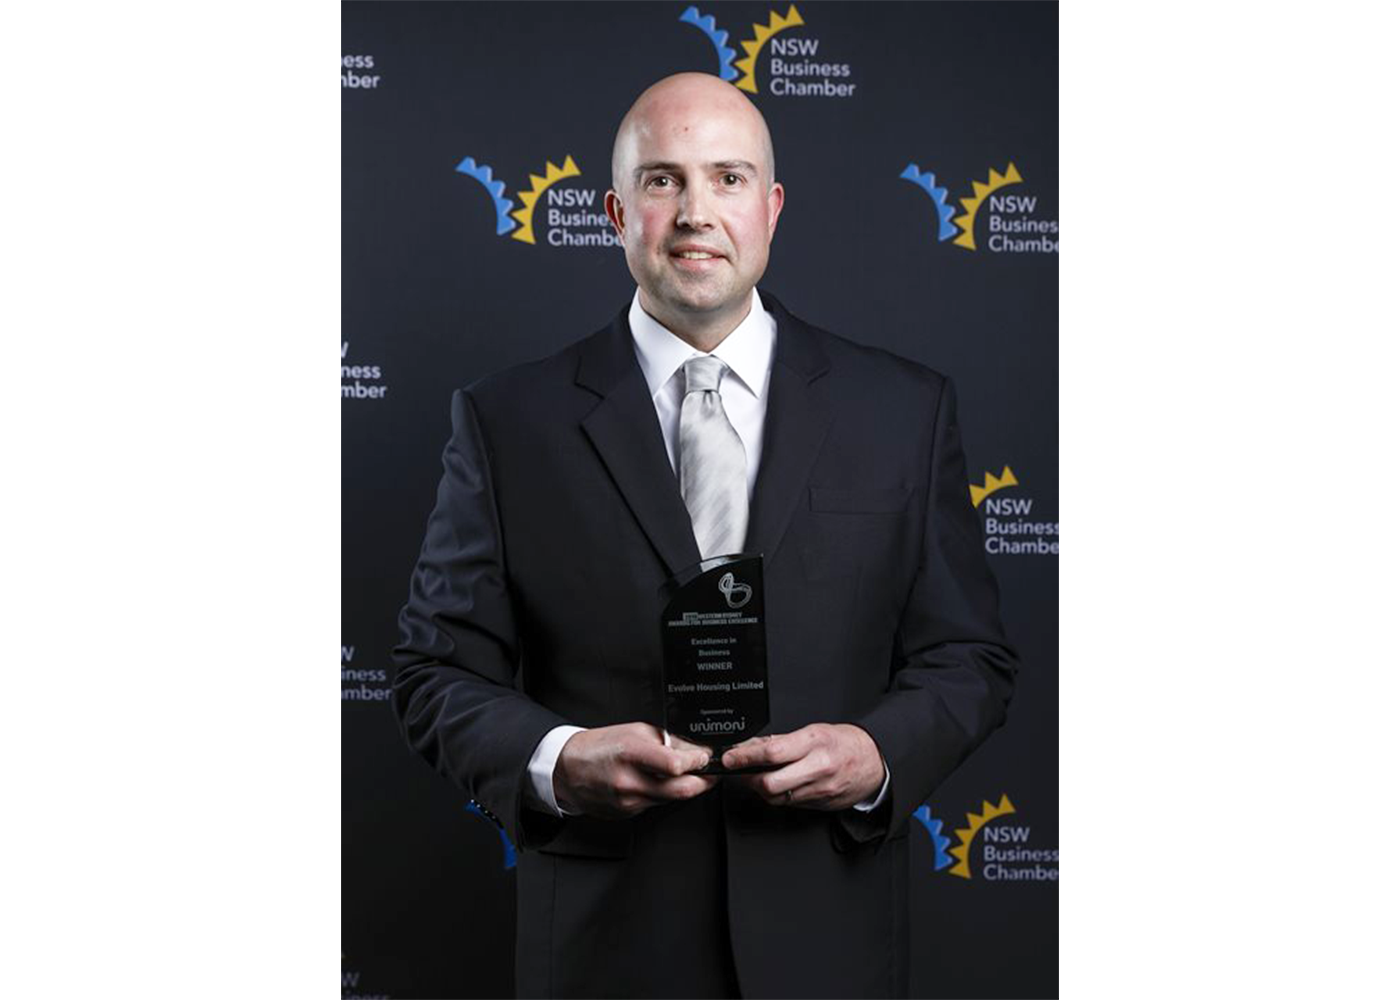 Man holds award and smiles to camera